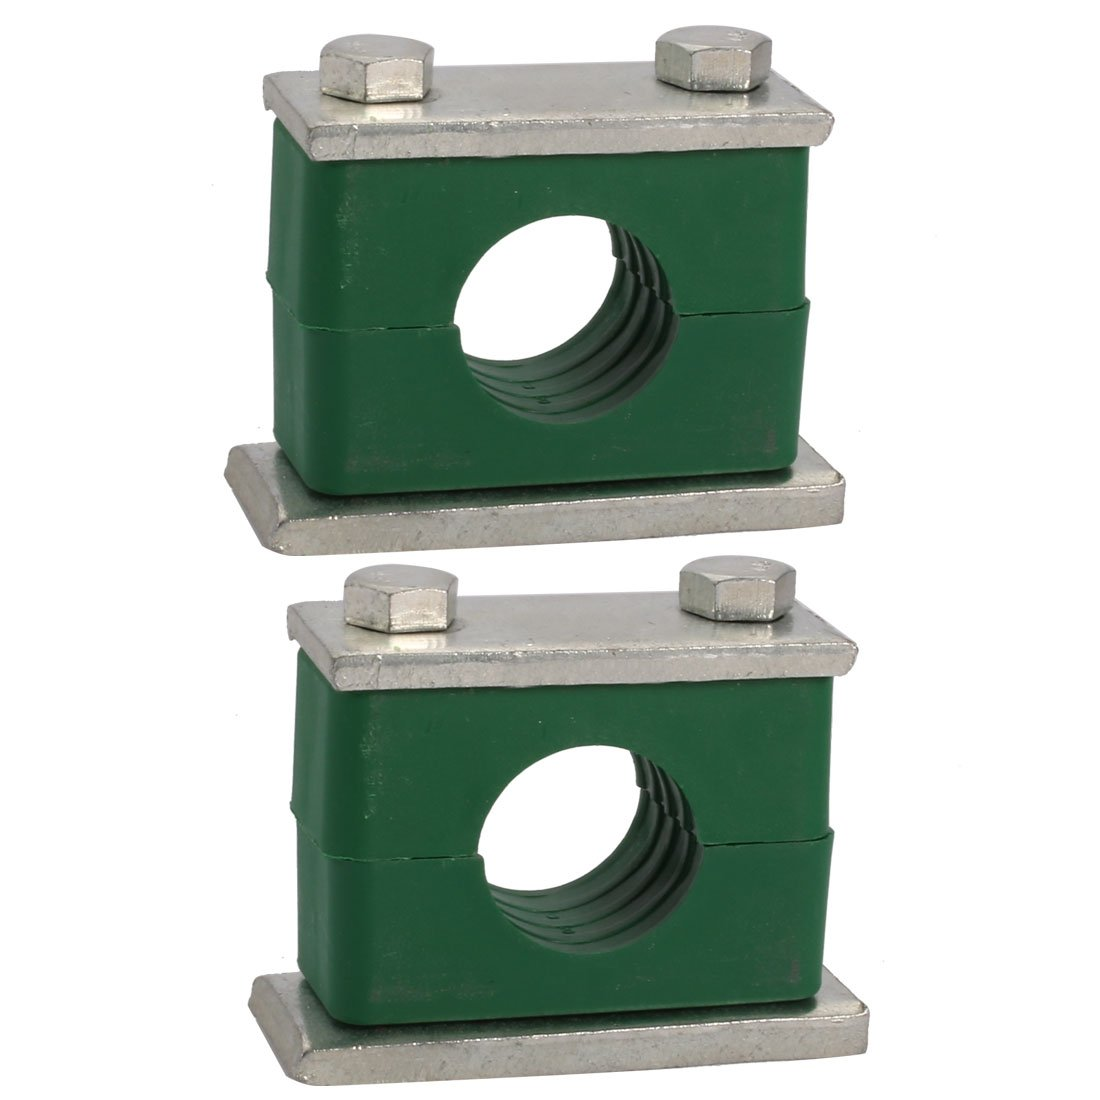 uxcell 30mm Fitting Dia Polypropylene Aluminum Heavy Series Hose Pipe Tube Clamp 2pcs